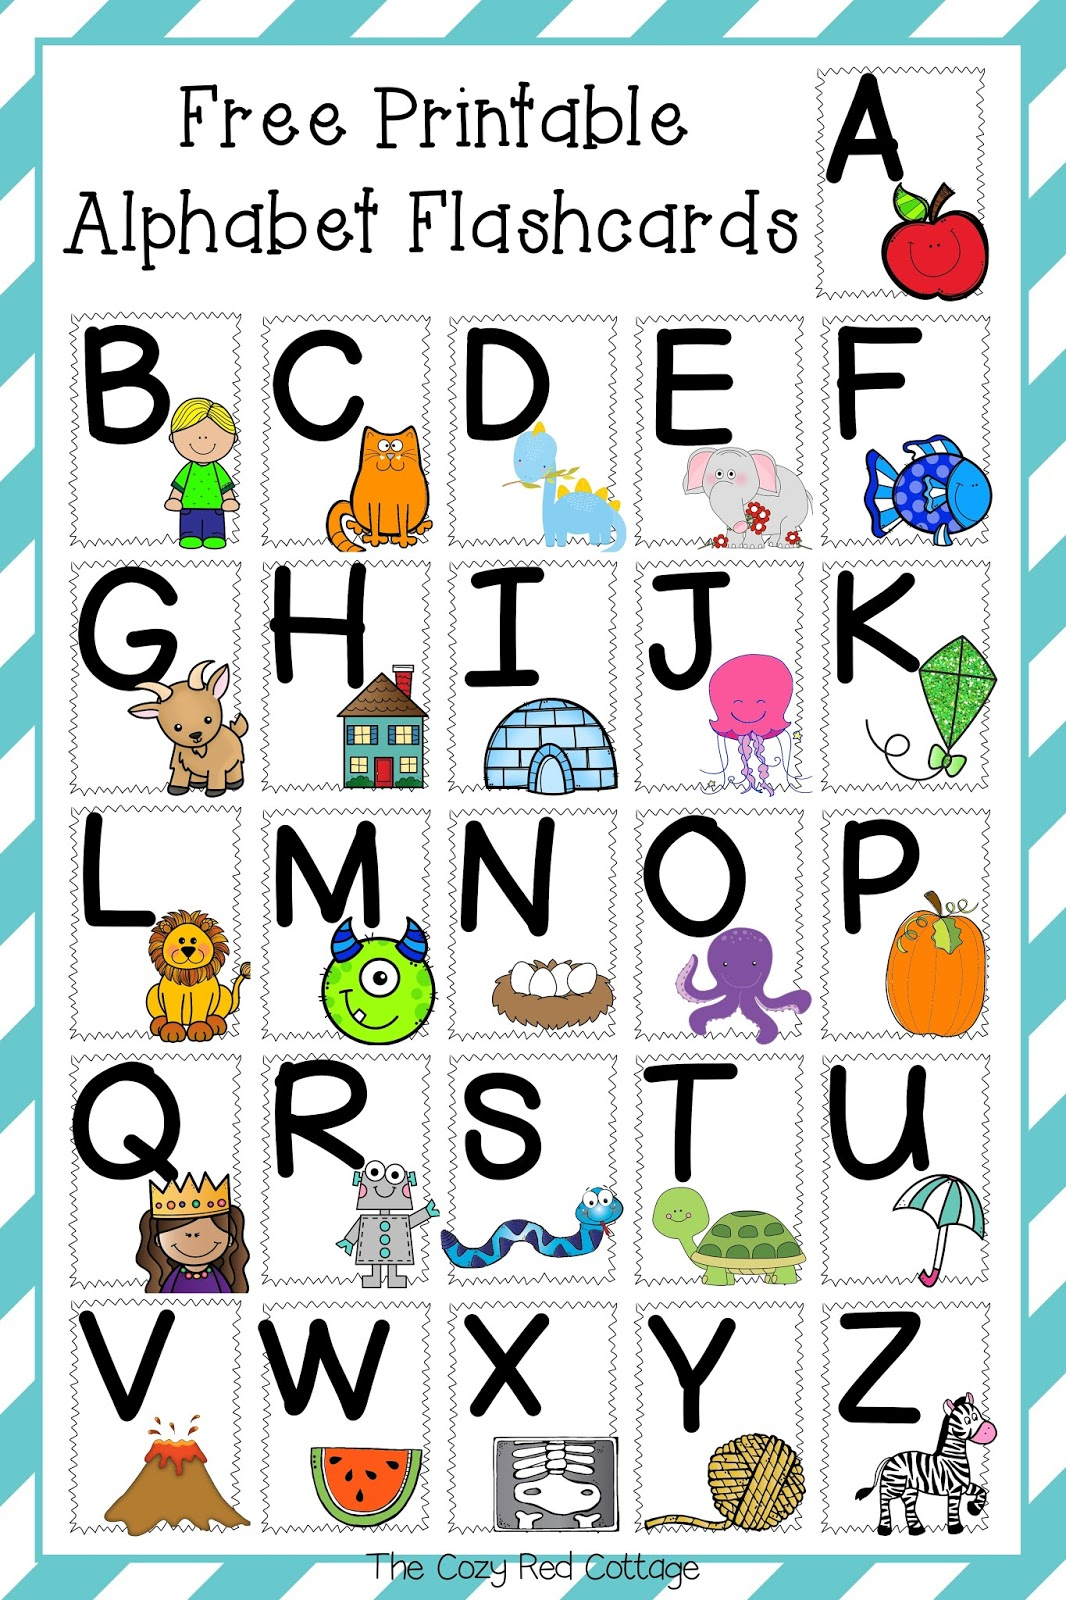 Printable Alphabet Flash Cards That Are Peaceful